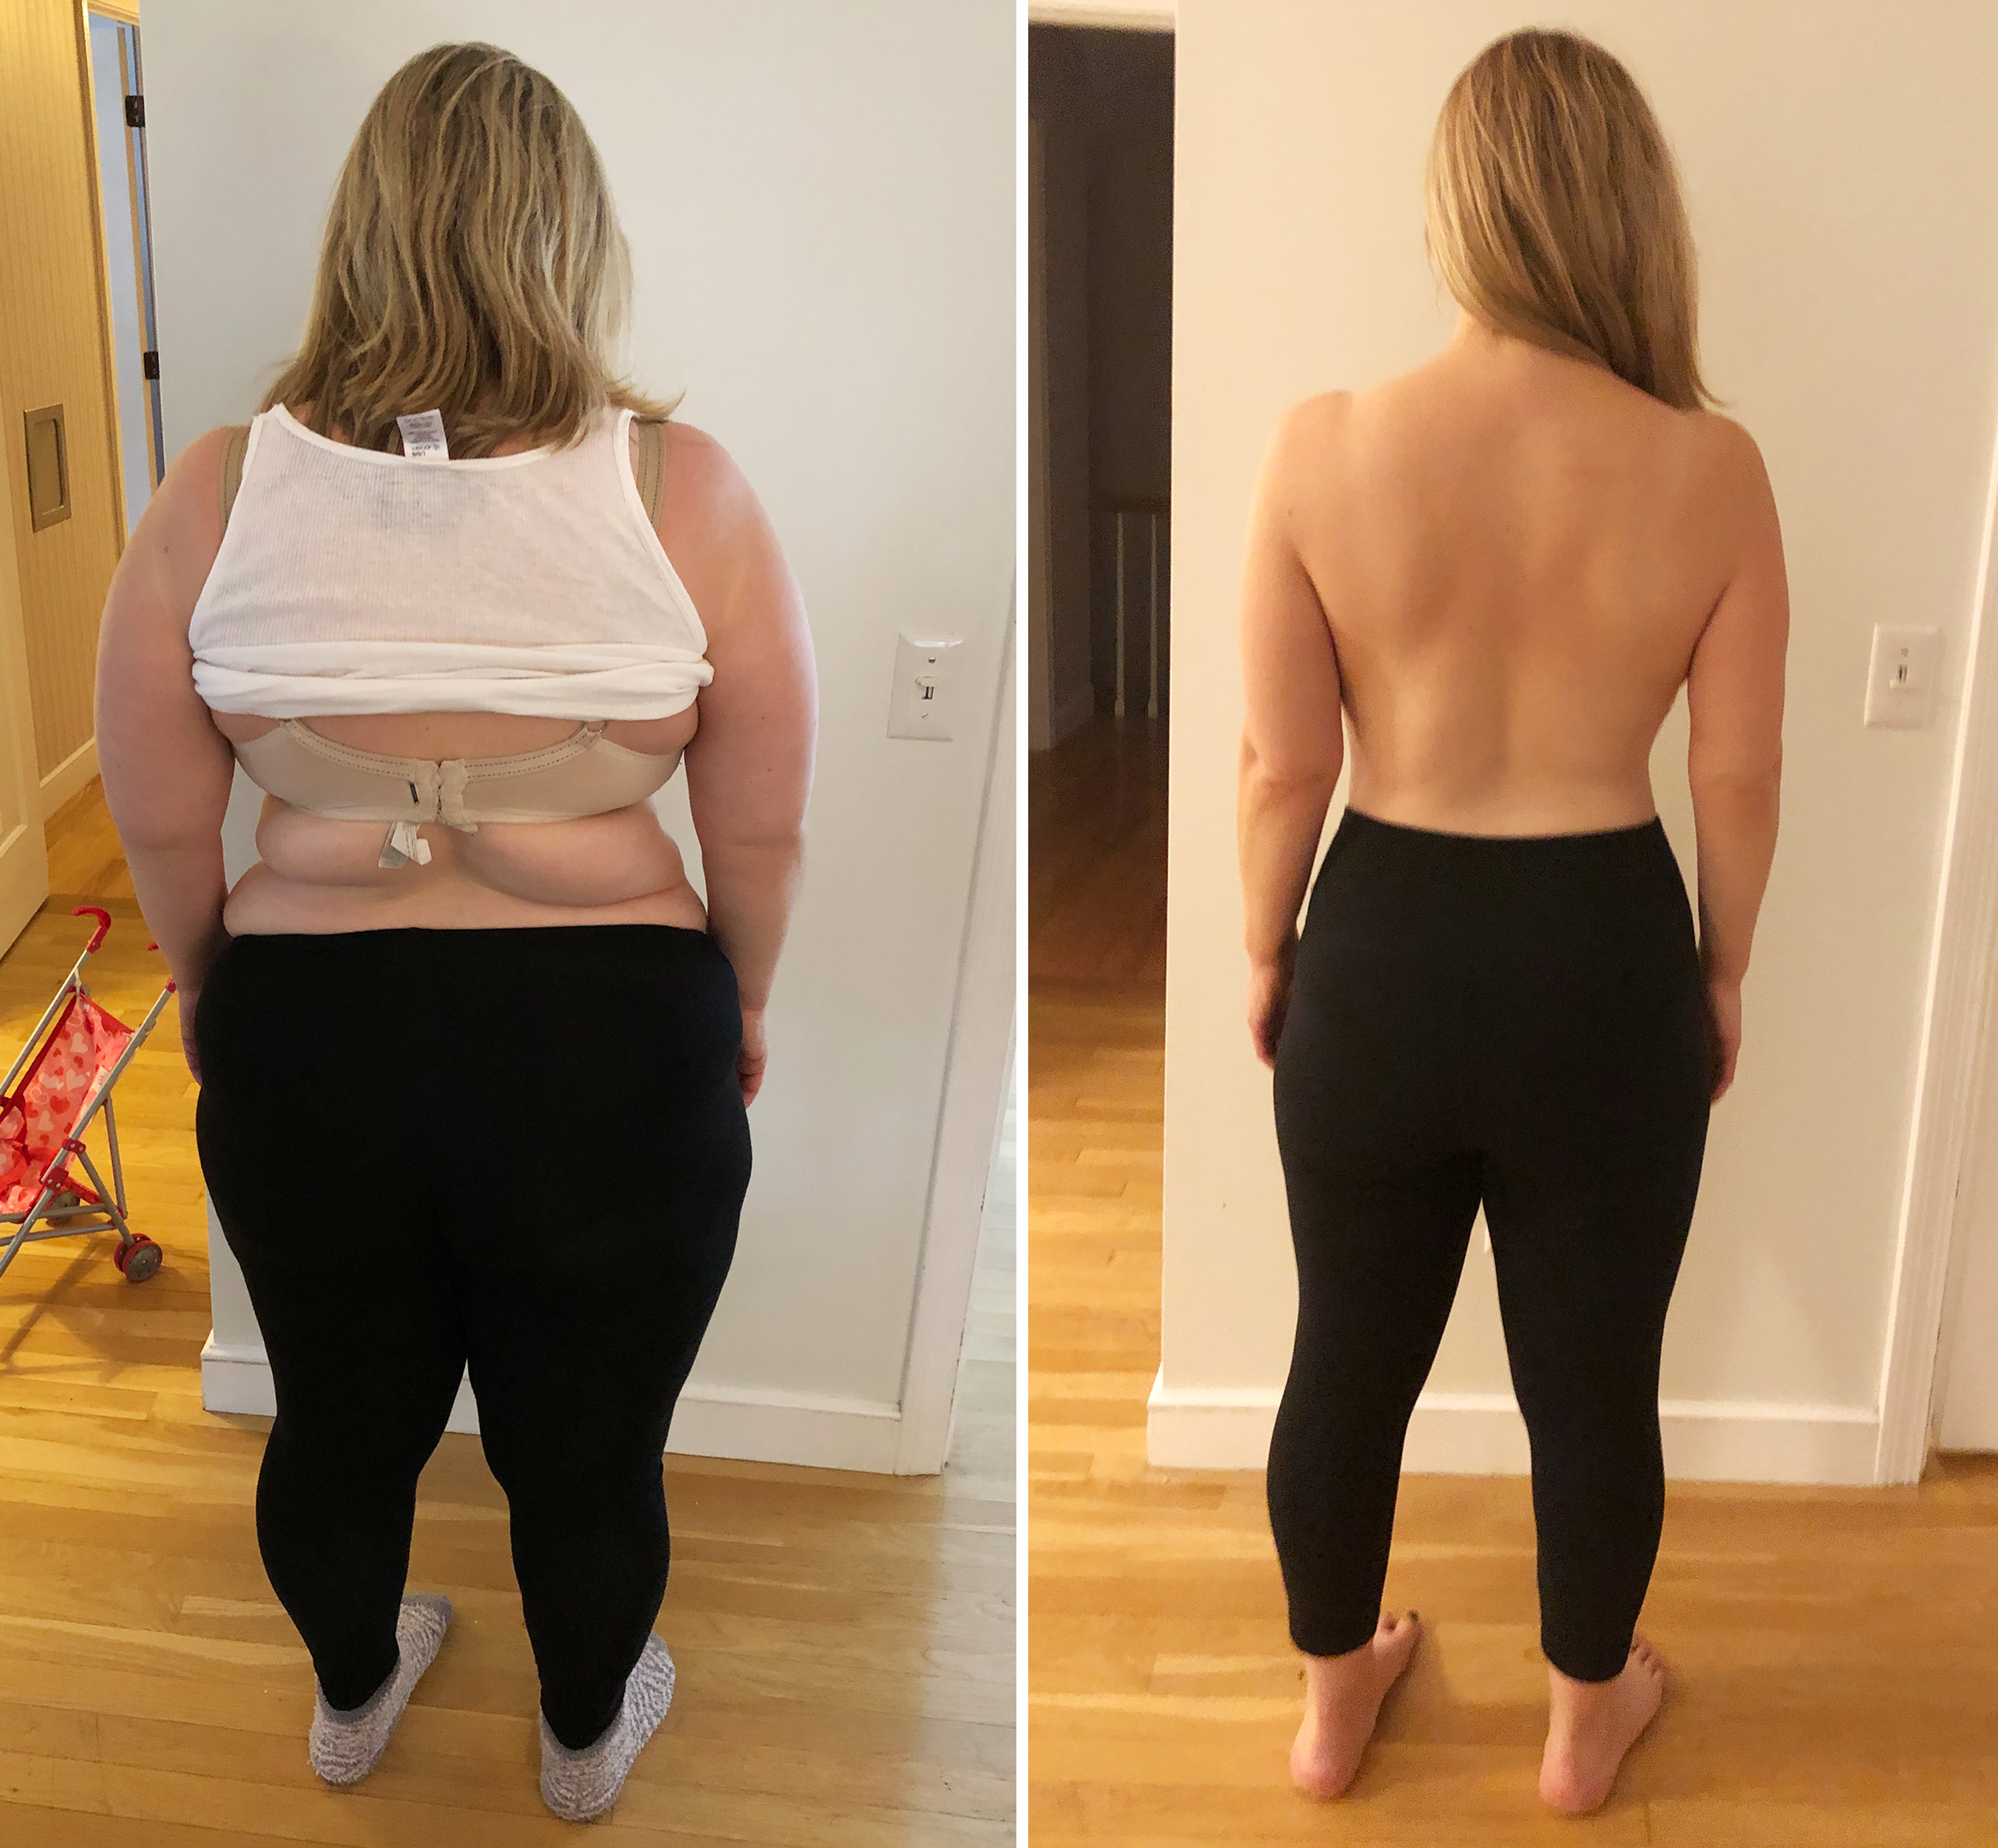 Weight loss surgery Woman discusses vertical sleeve gastrectomy